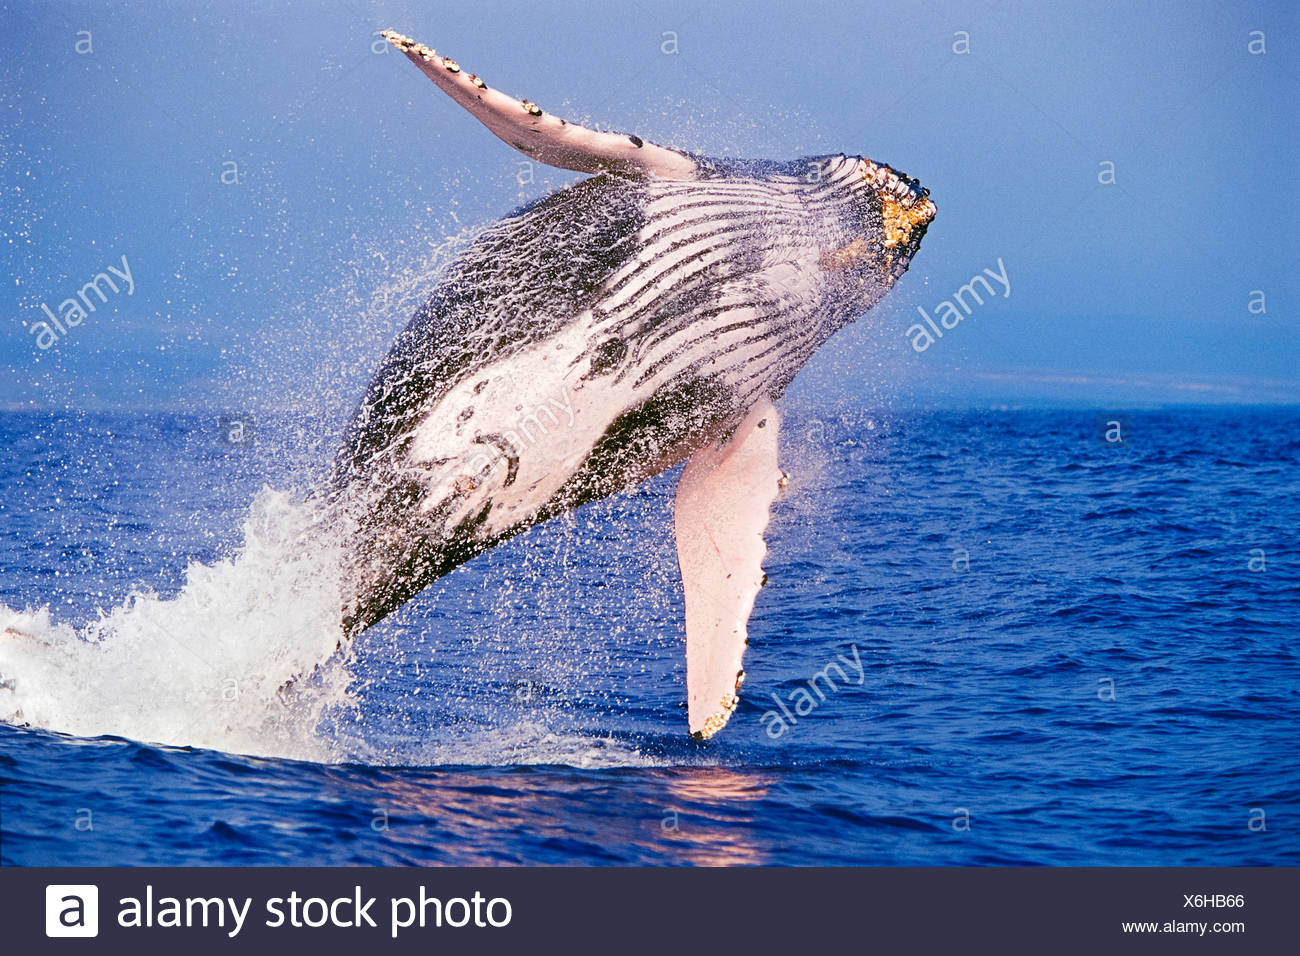 Breaching Humpback Whale, Megaptera novaeangliae, Hawaii, USA - Stock Image